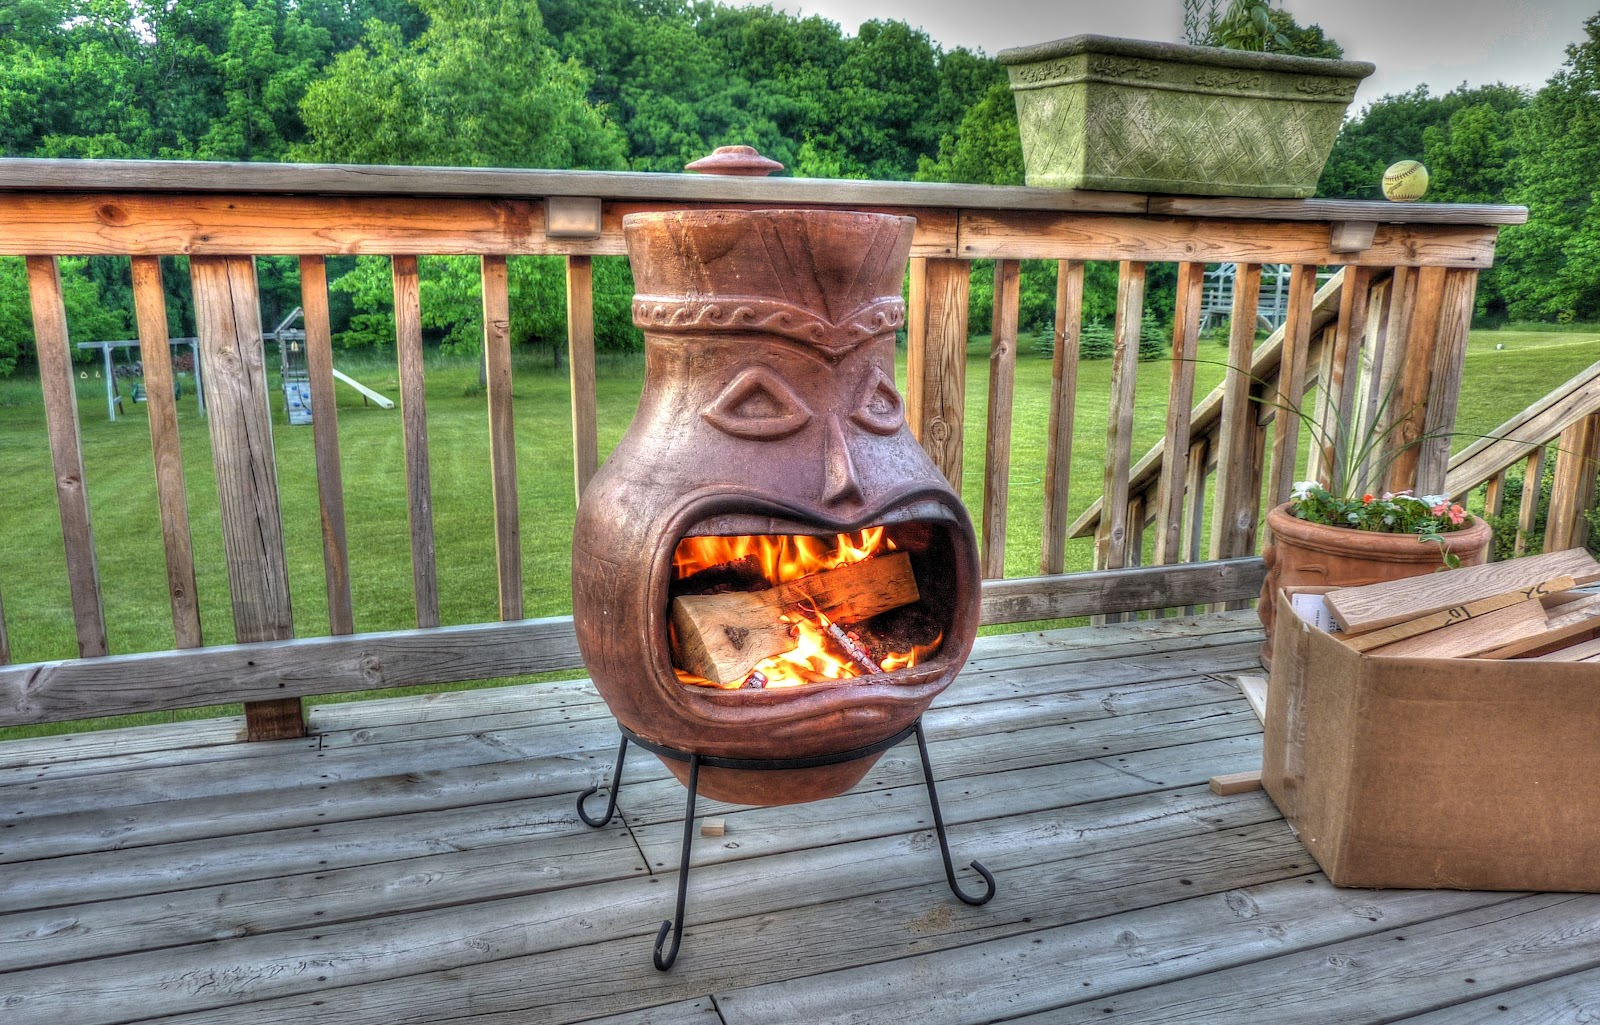 Beau Clay Chiminea Patiodesign_susumeviton_com